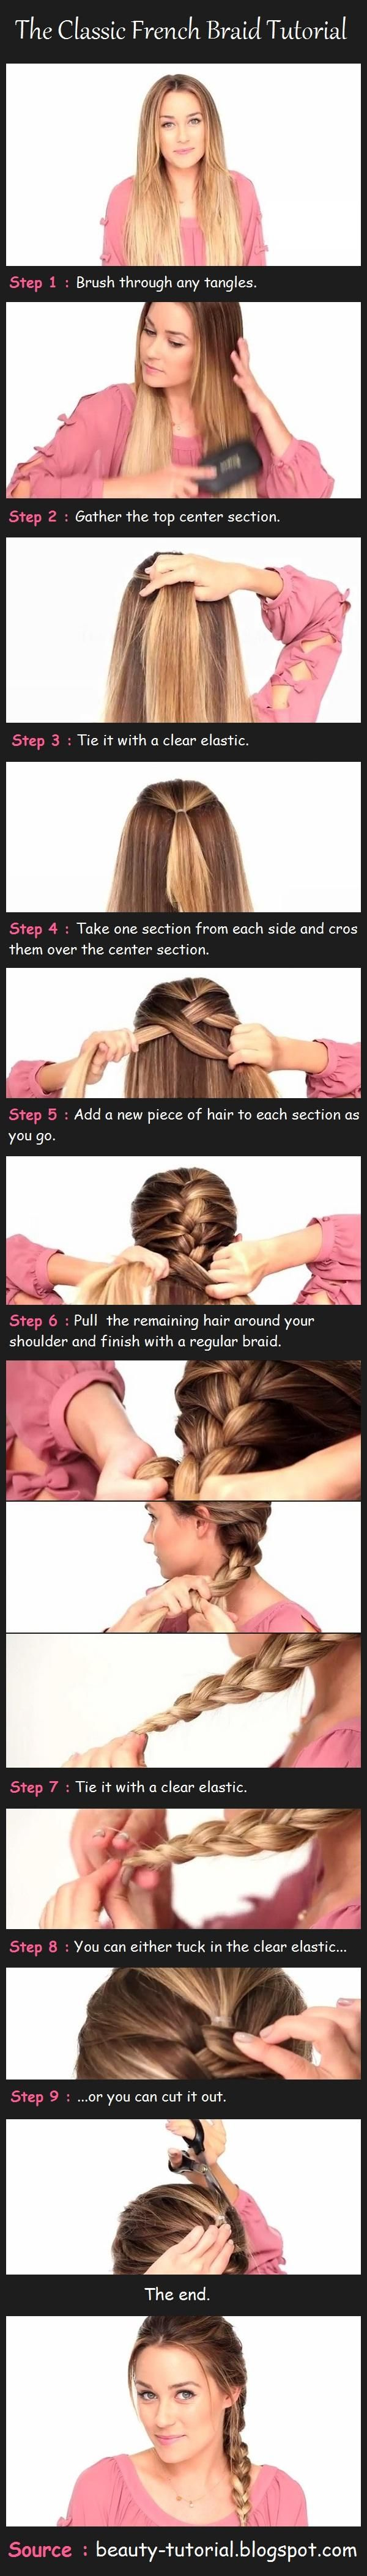 The Classic French Braid Step-By-Step Pictorial - It's all about using a clear plastic hair tie!